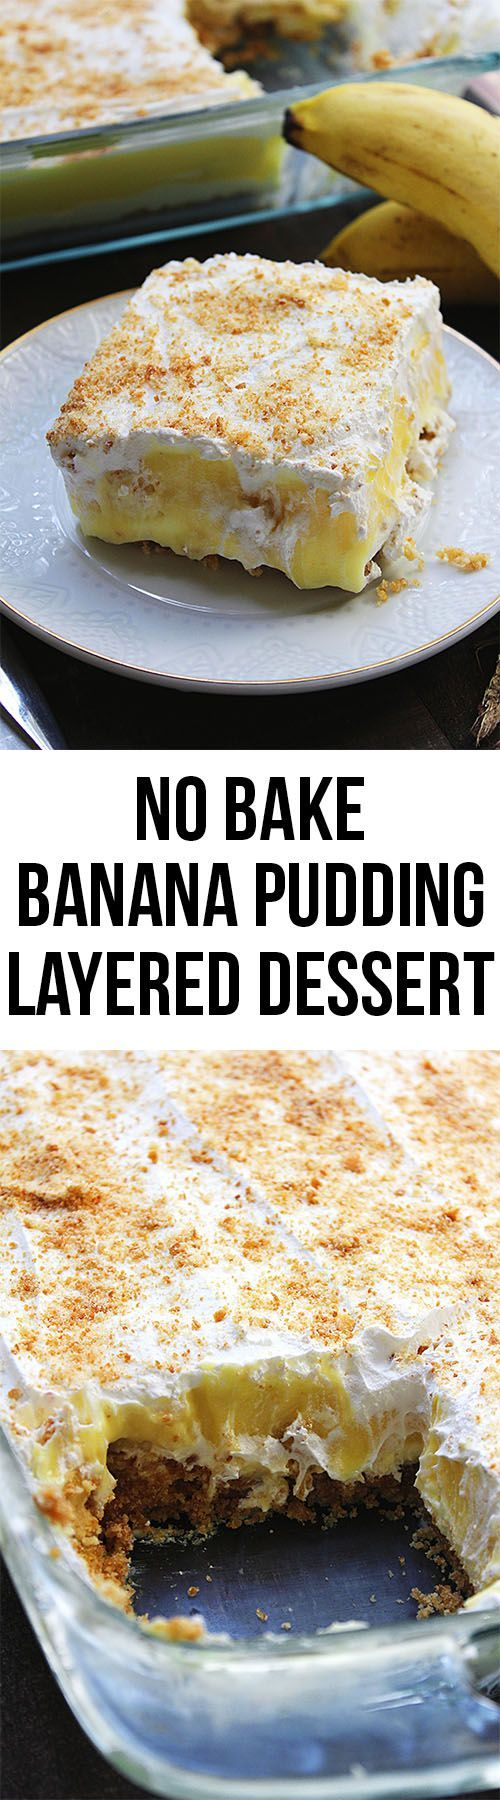 THIS NO BAKE BANANA PUDDING LAYER DESSERT STARTS WITH A BUTTERY LAYER OF VANILLA WAFERS, IS TOPPED WITH A NO BAKE CHEESECAKE LAYER, NEXT IS BANANA PUDDING WITH REAL BANANAS, AND IS TOPPED OFF WITH WHIPPED TOPPING AND WAFER CRUMBS. IT IS SUCH AN EASY AND INEXPENSIVE DESSERT RECIPE!